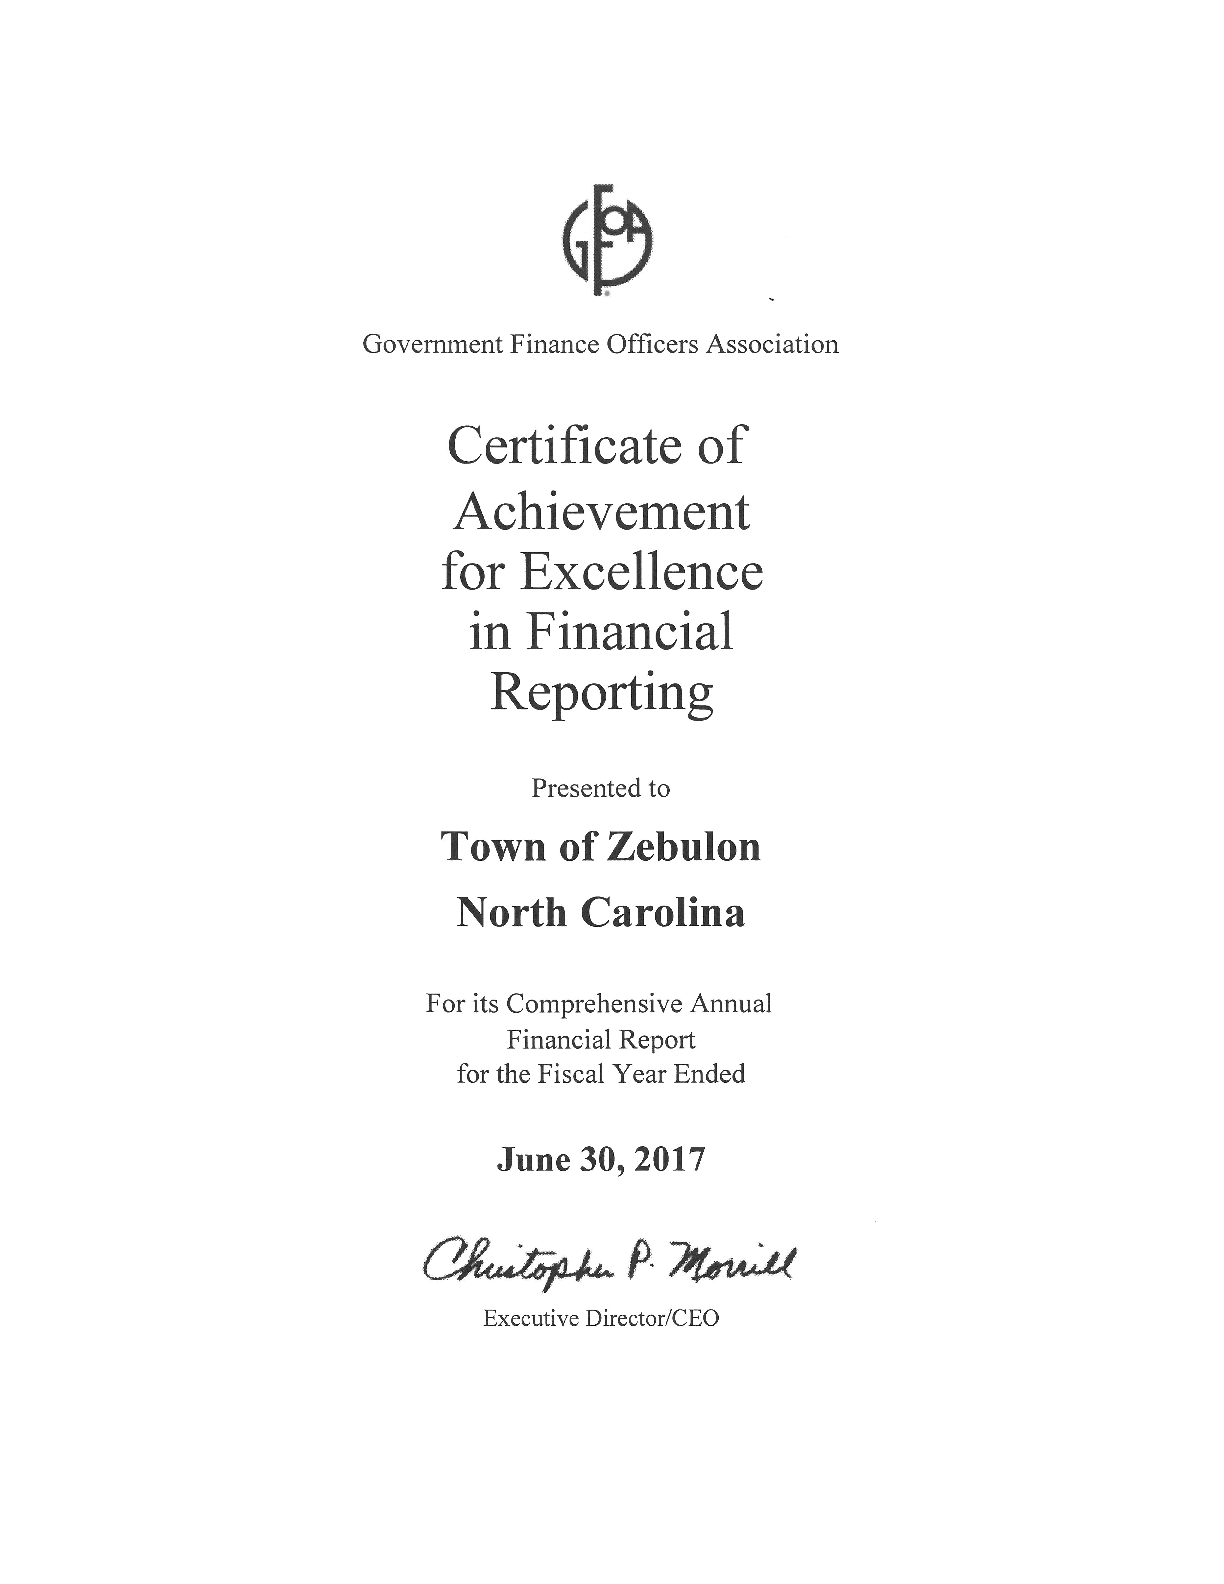 June 30, 2017 Certificate of Achievement for Excellence in Financial Reporting